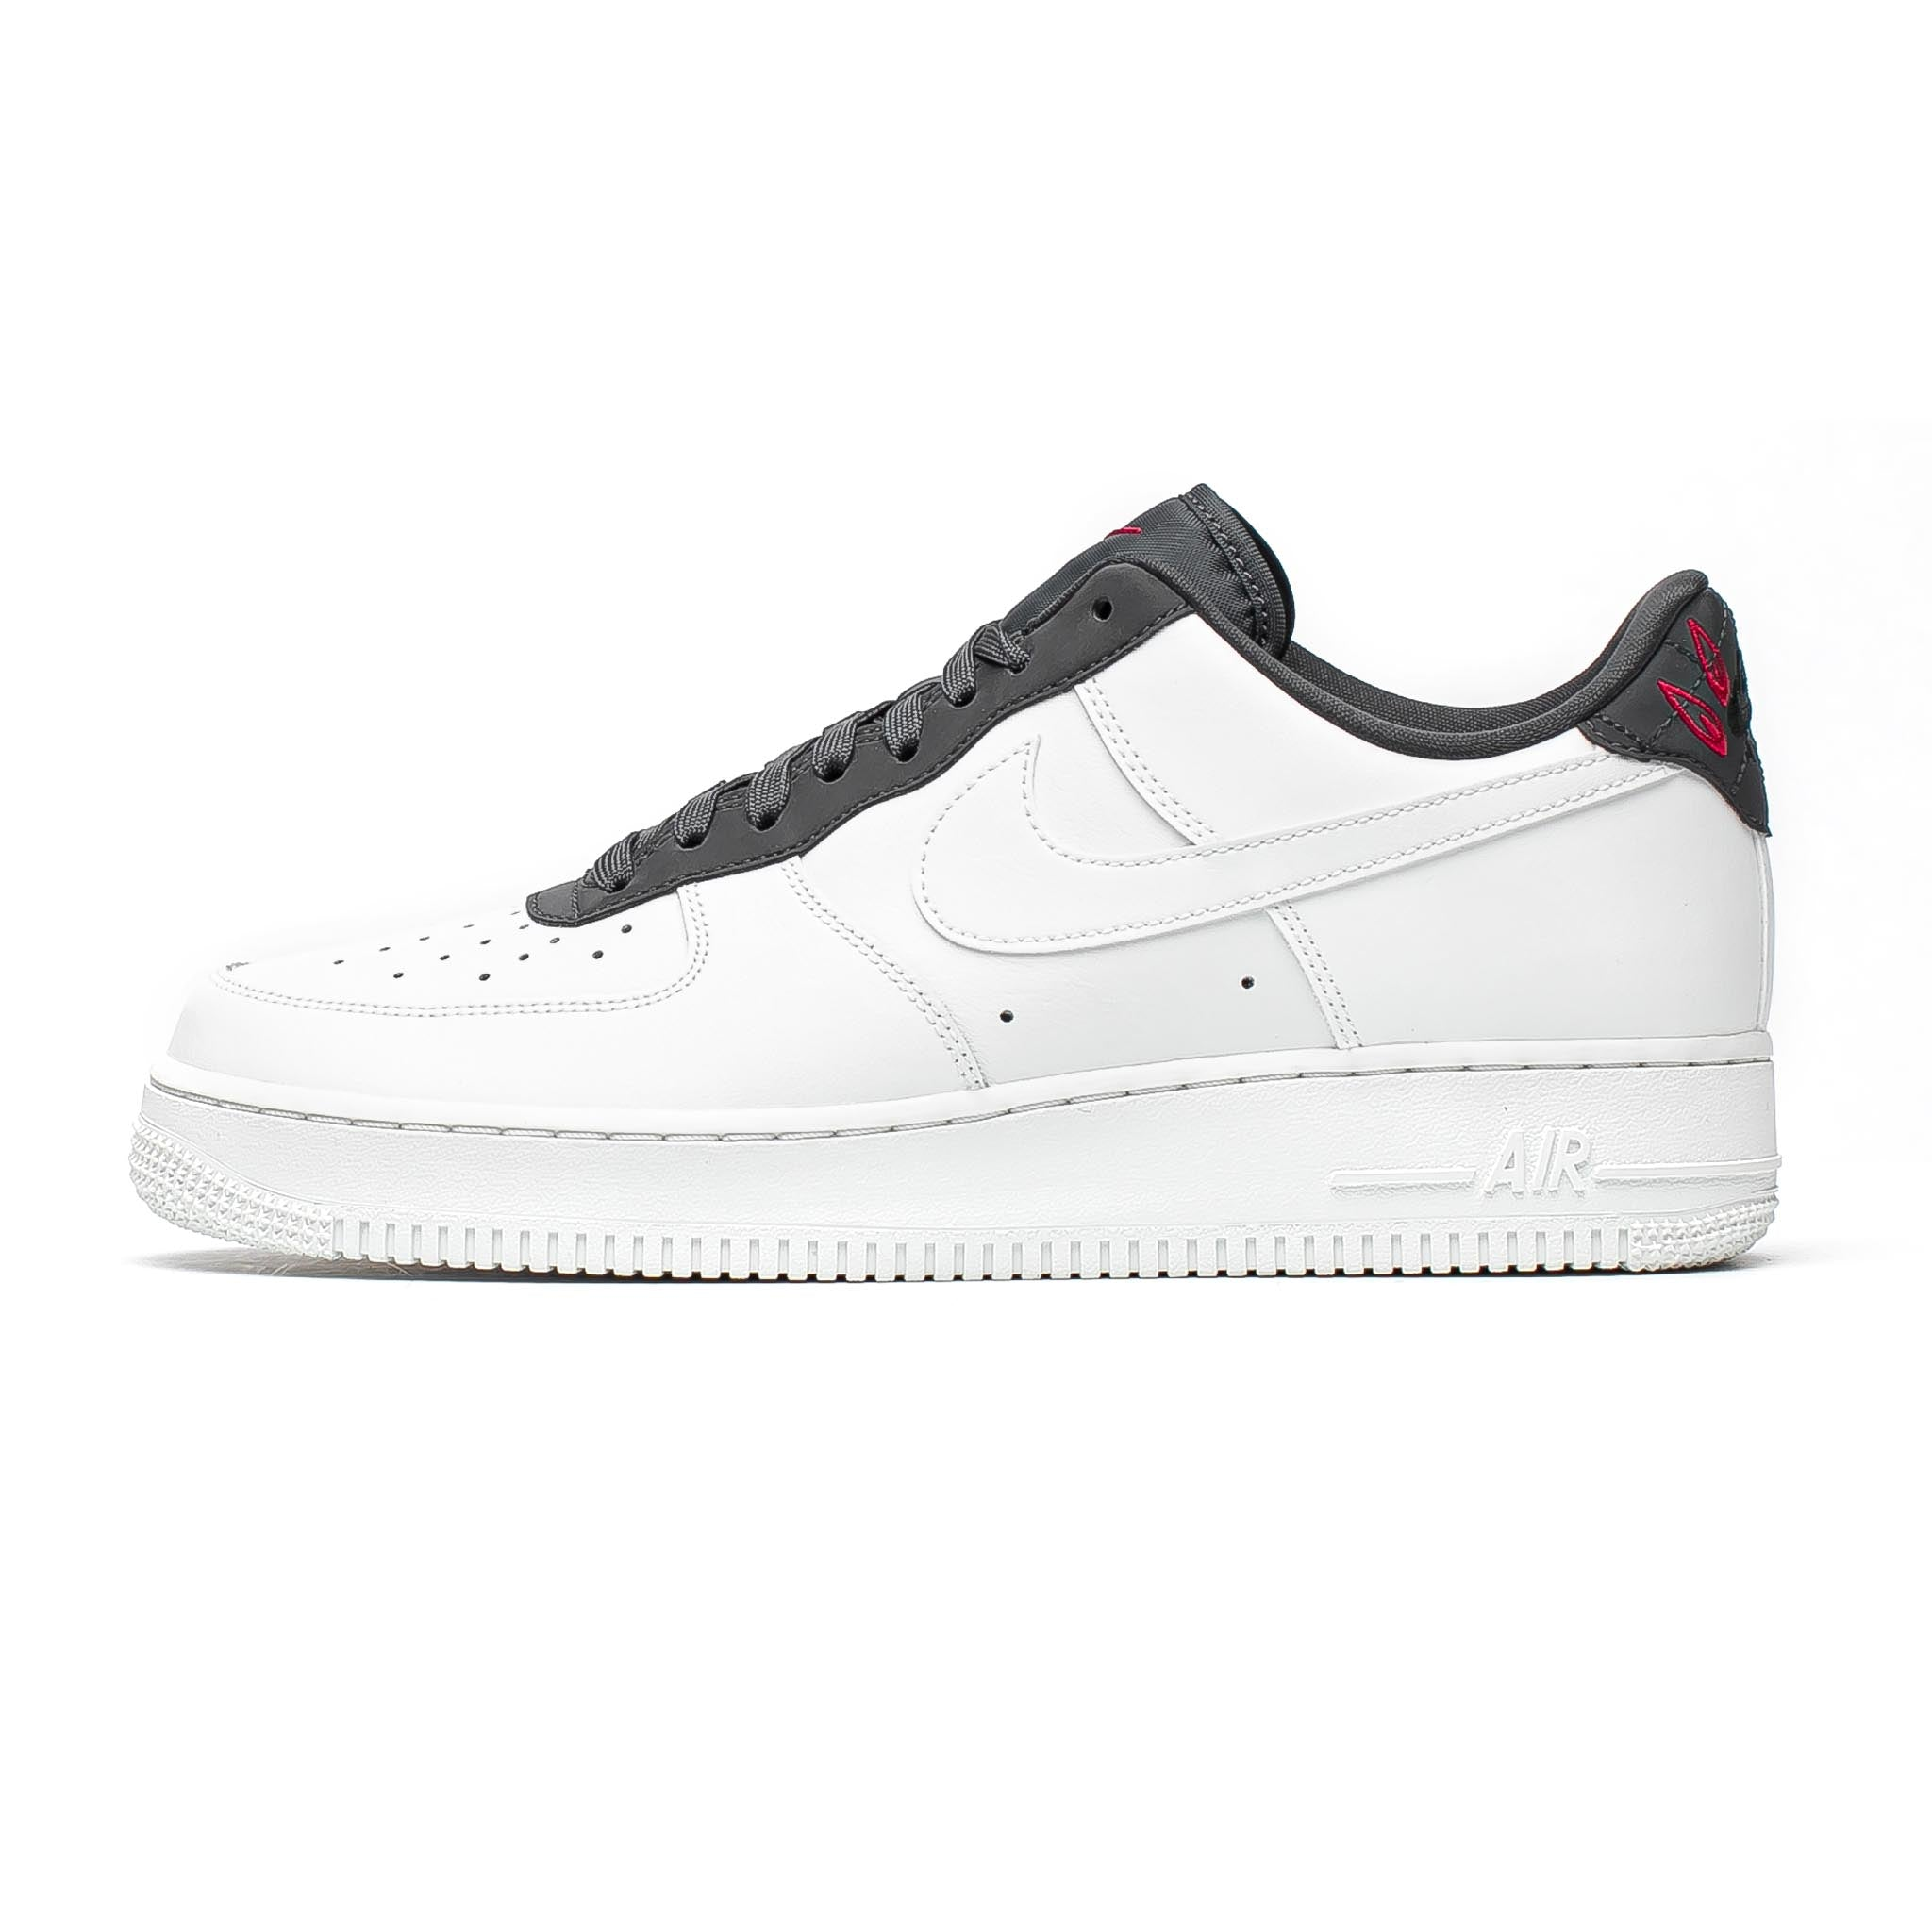 Nike Air Force 1 '07 LV8 'Souvenir Jacket'